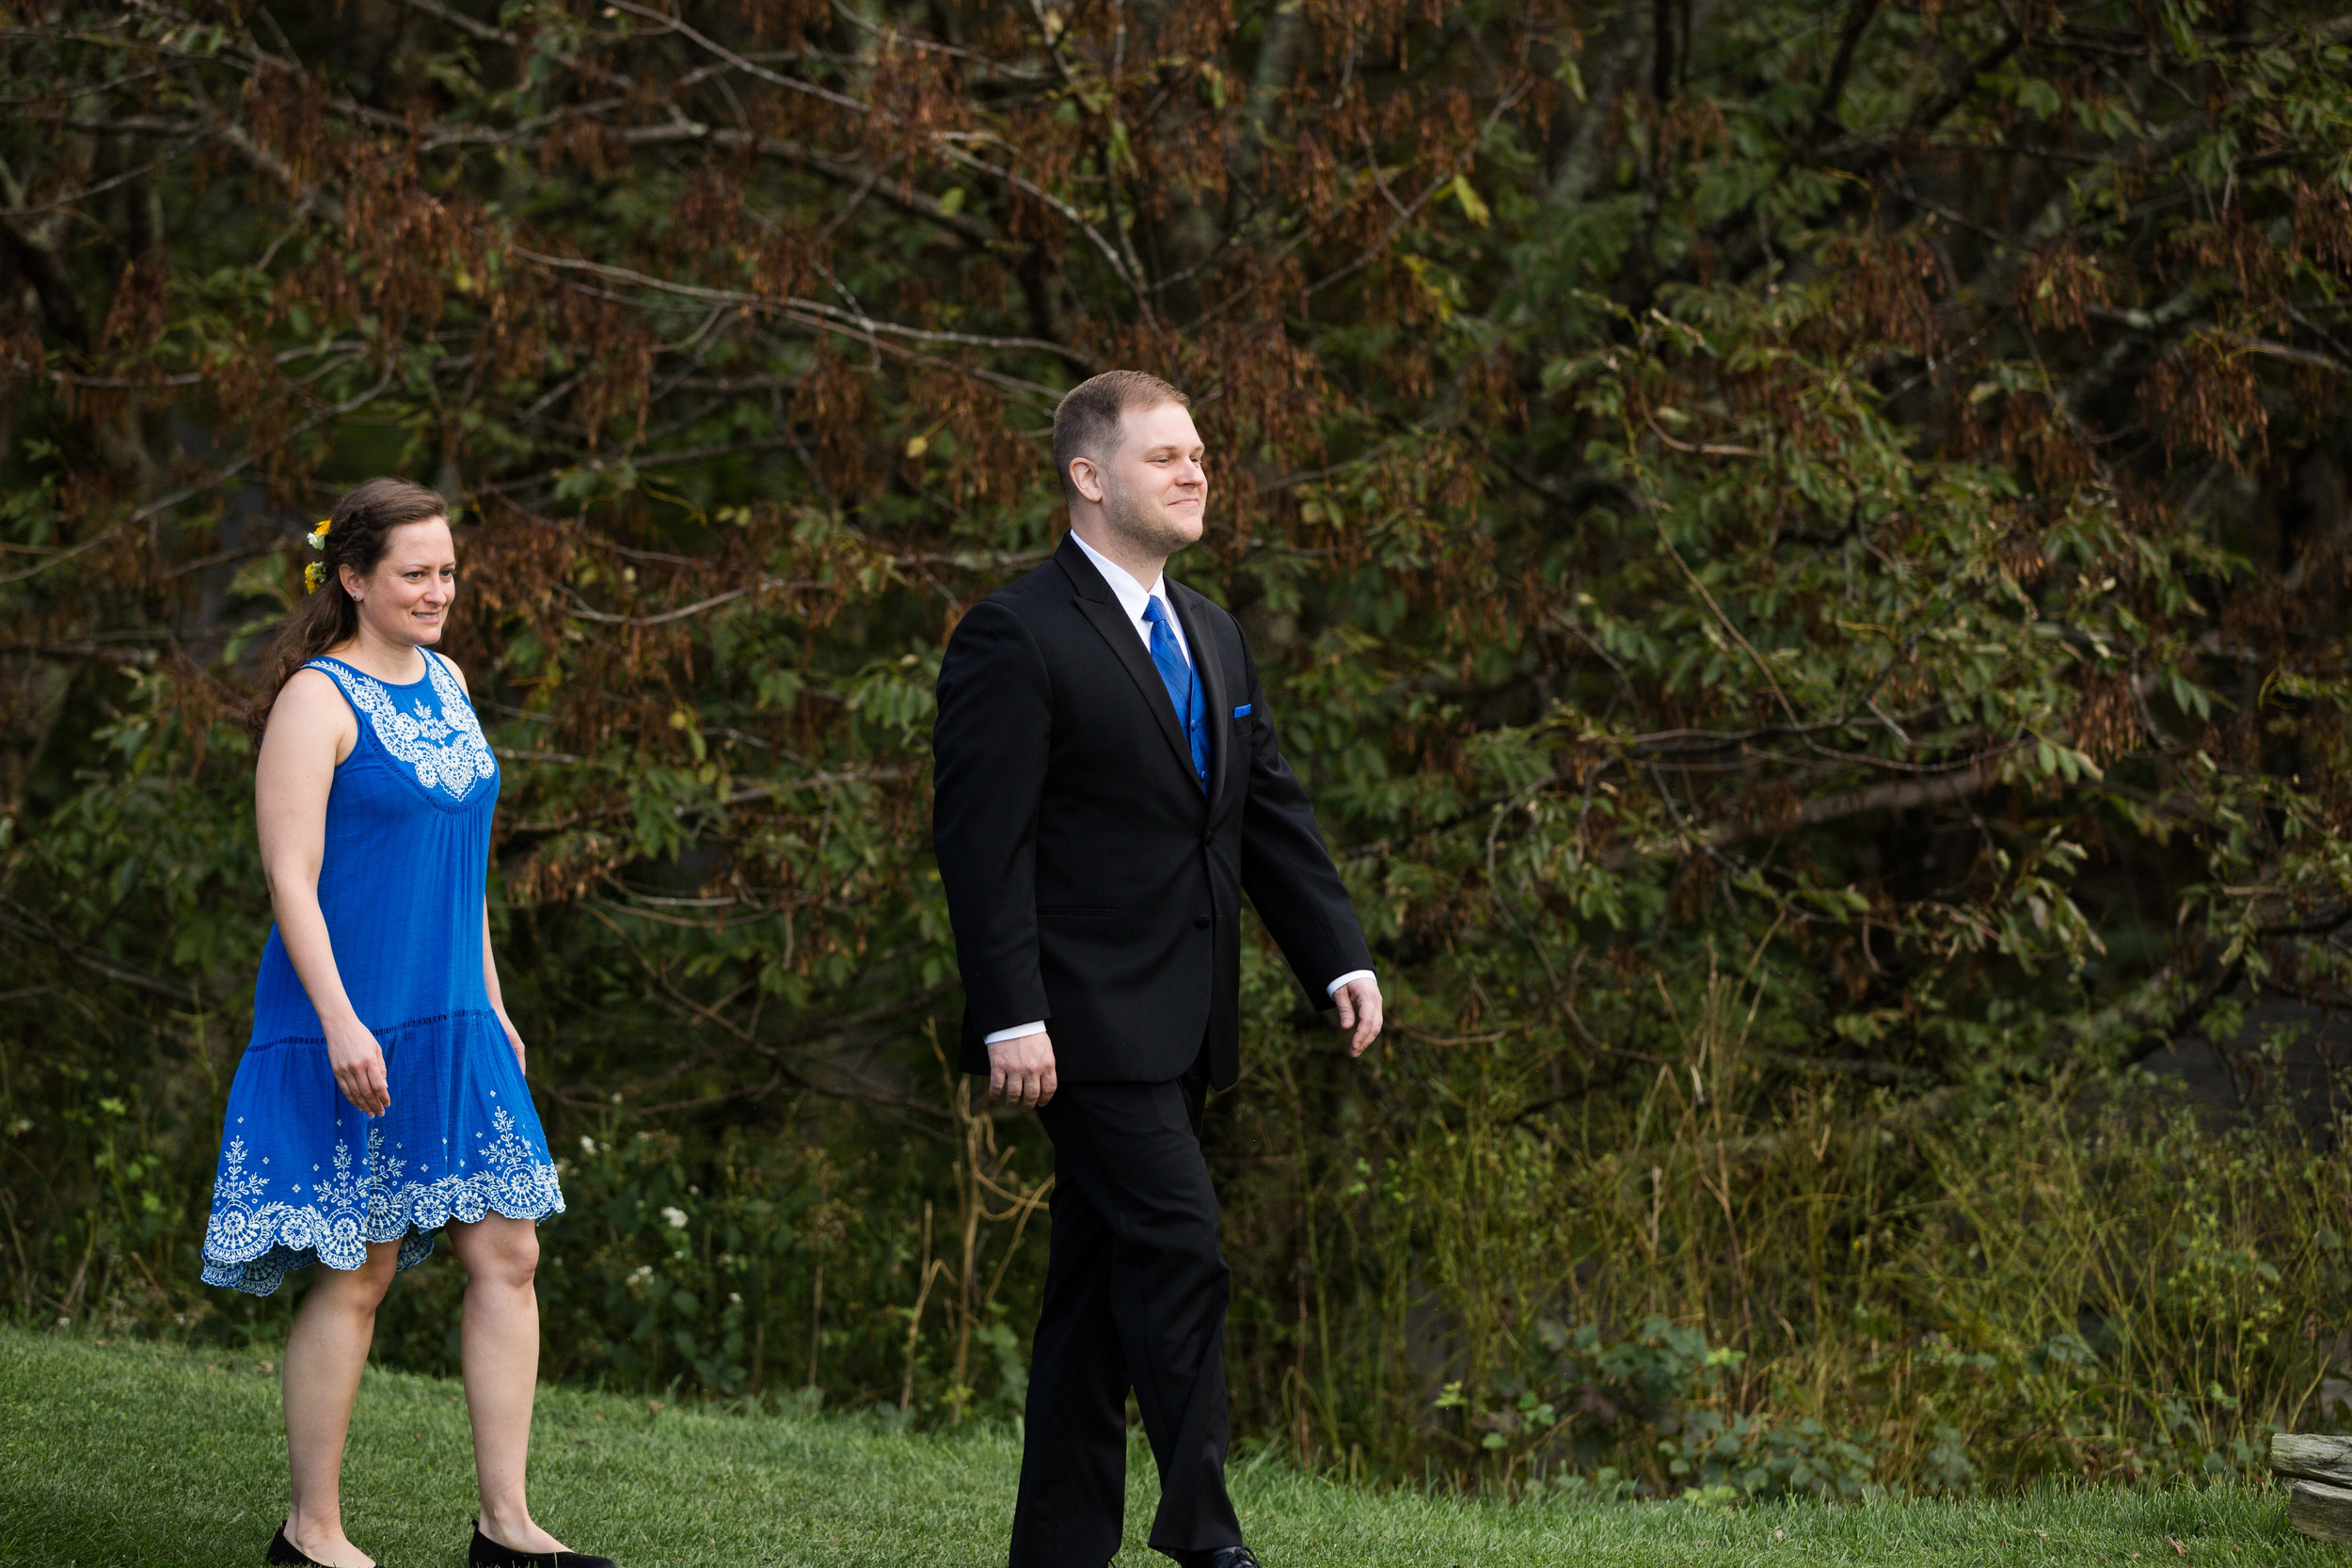 Wintergreen wedding ben brandon-58.jpg